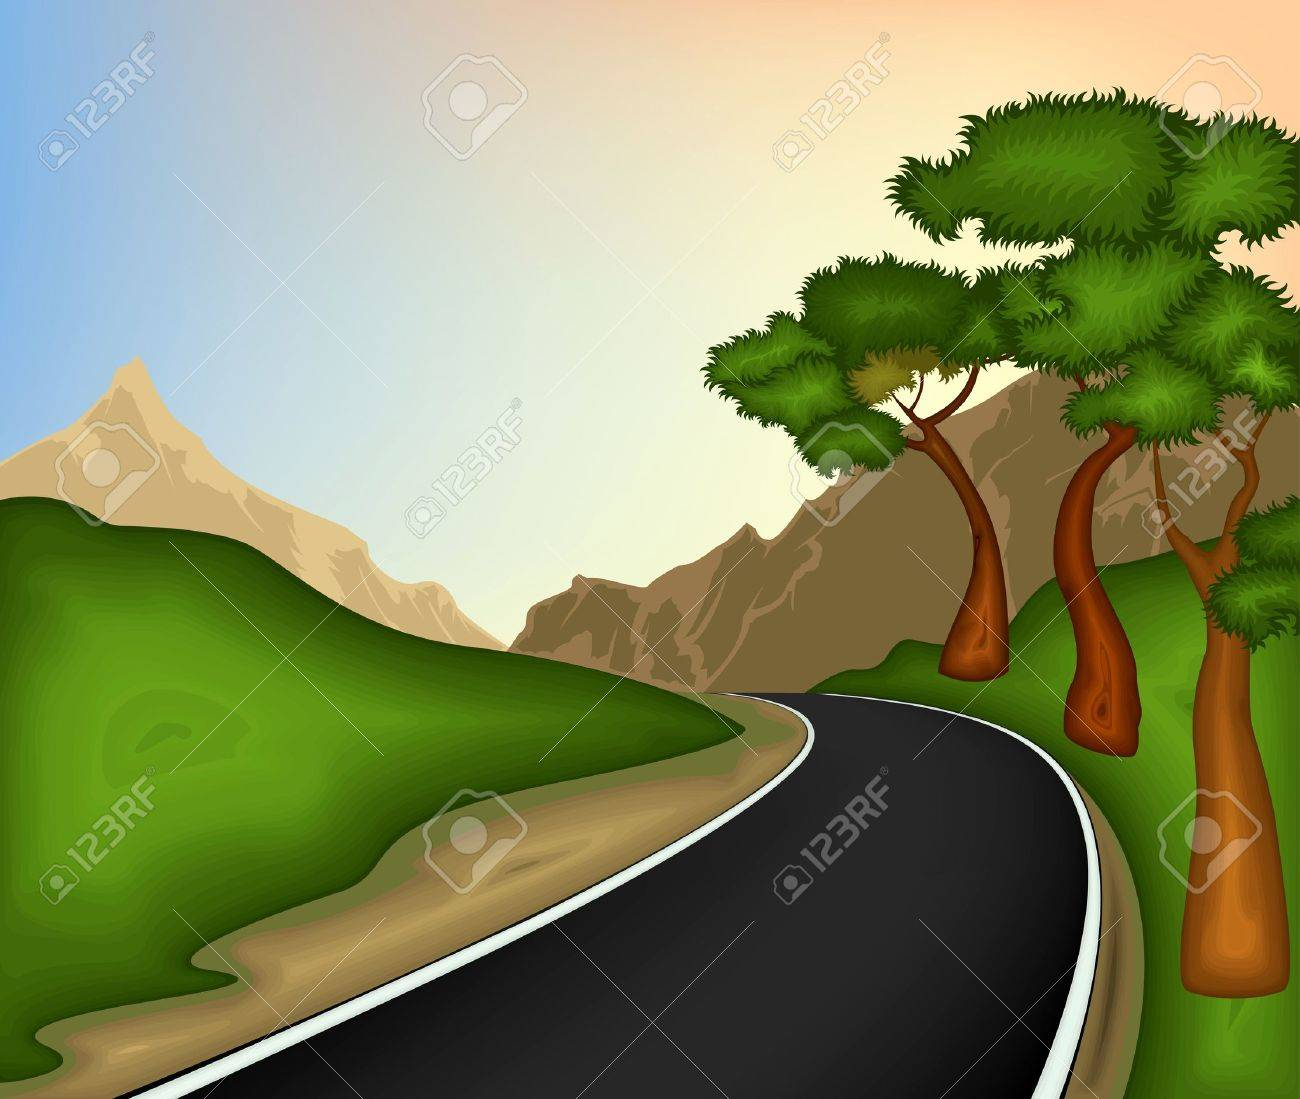 Road and nature background Stock Vector - 14029575